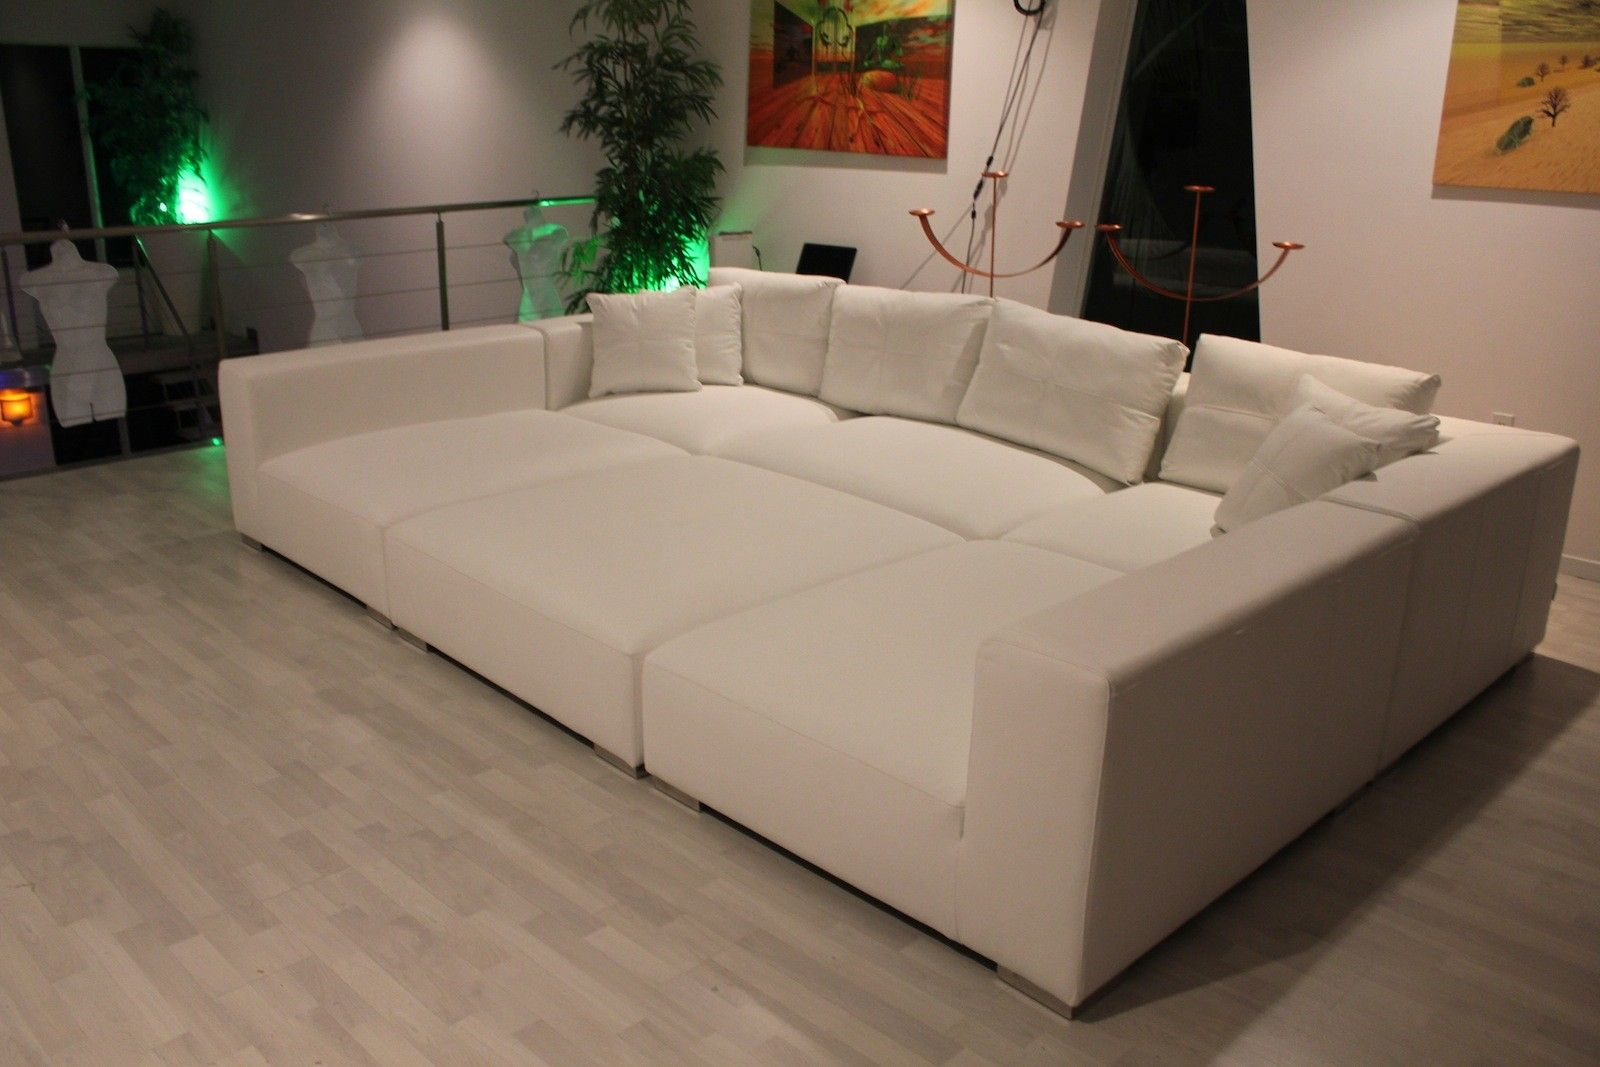 sofa pit couch mart ratings it looks so comfy d for the home pinterest